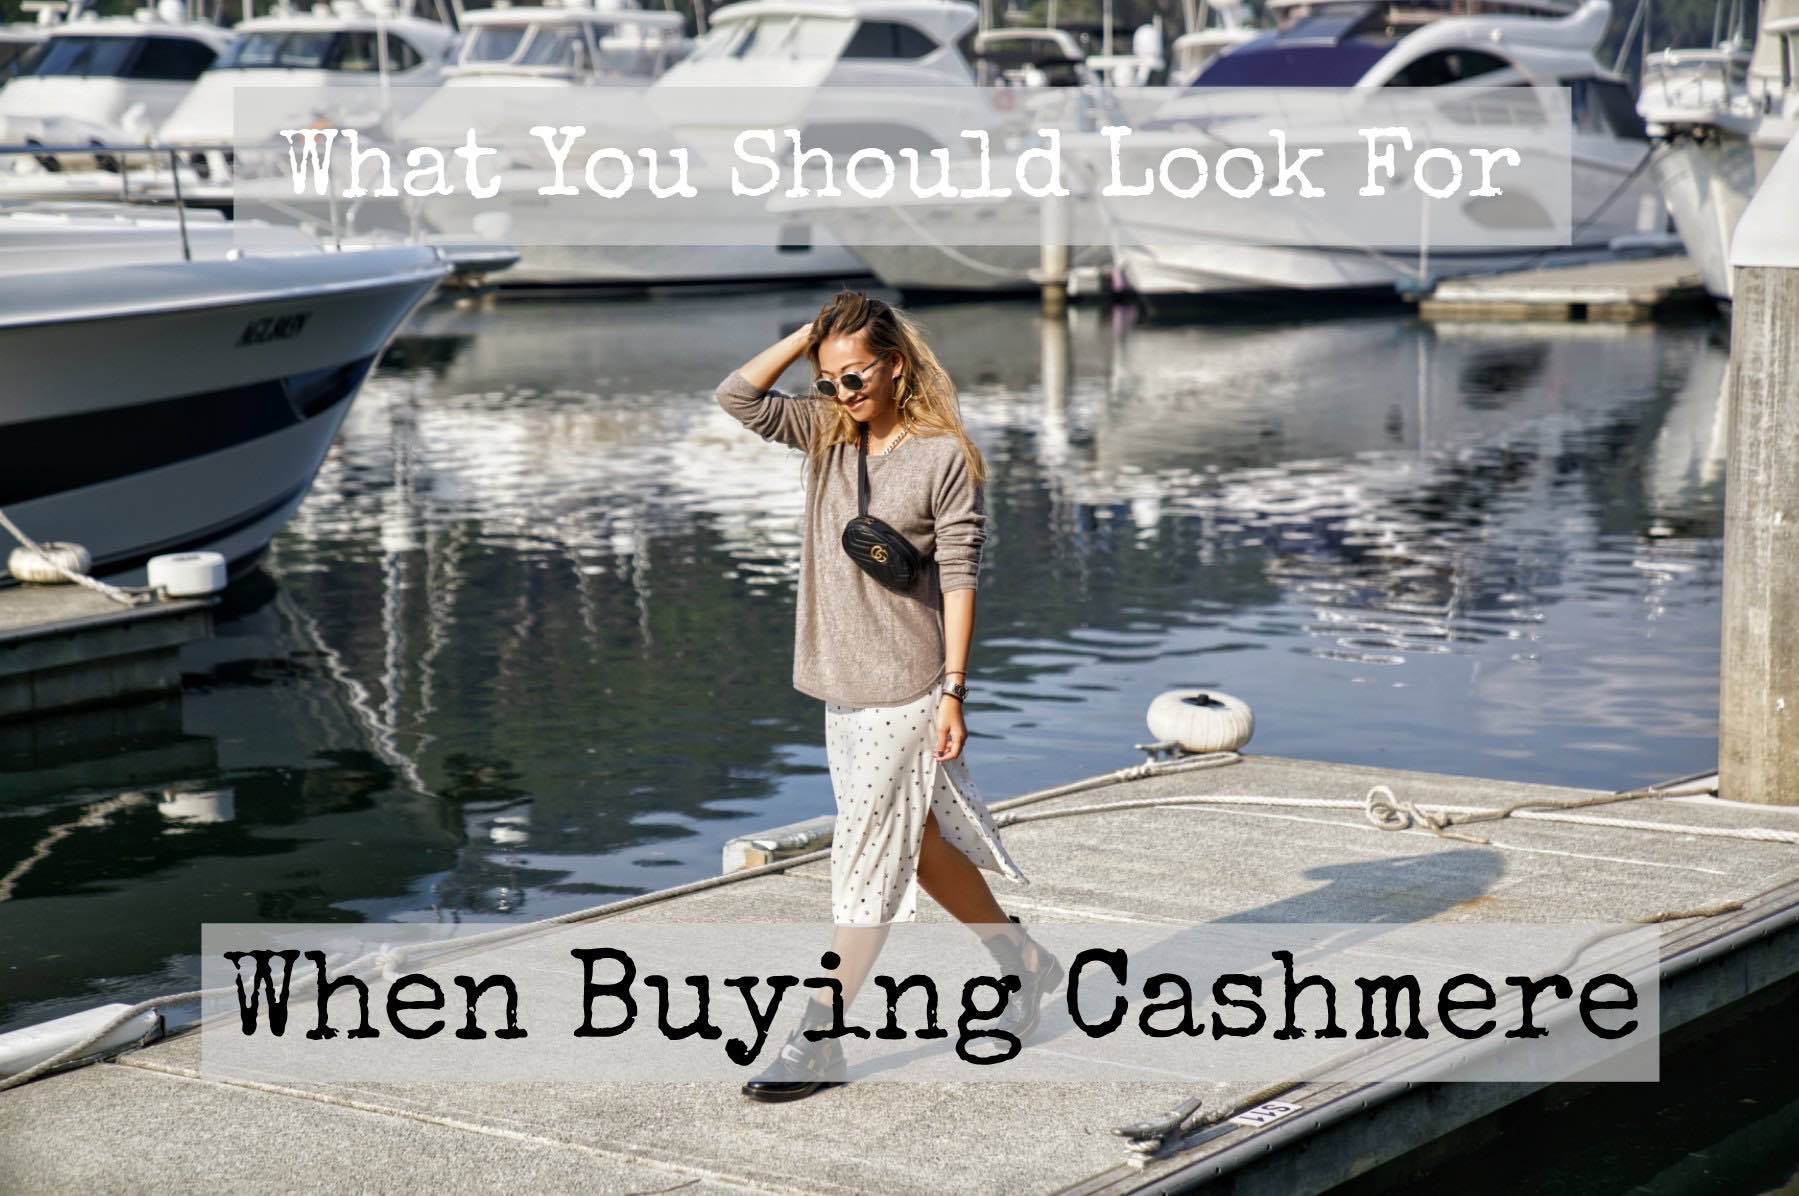 What you should look for when buying cashmere